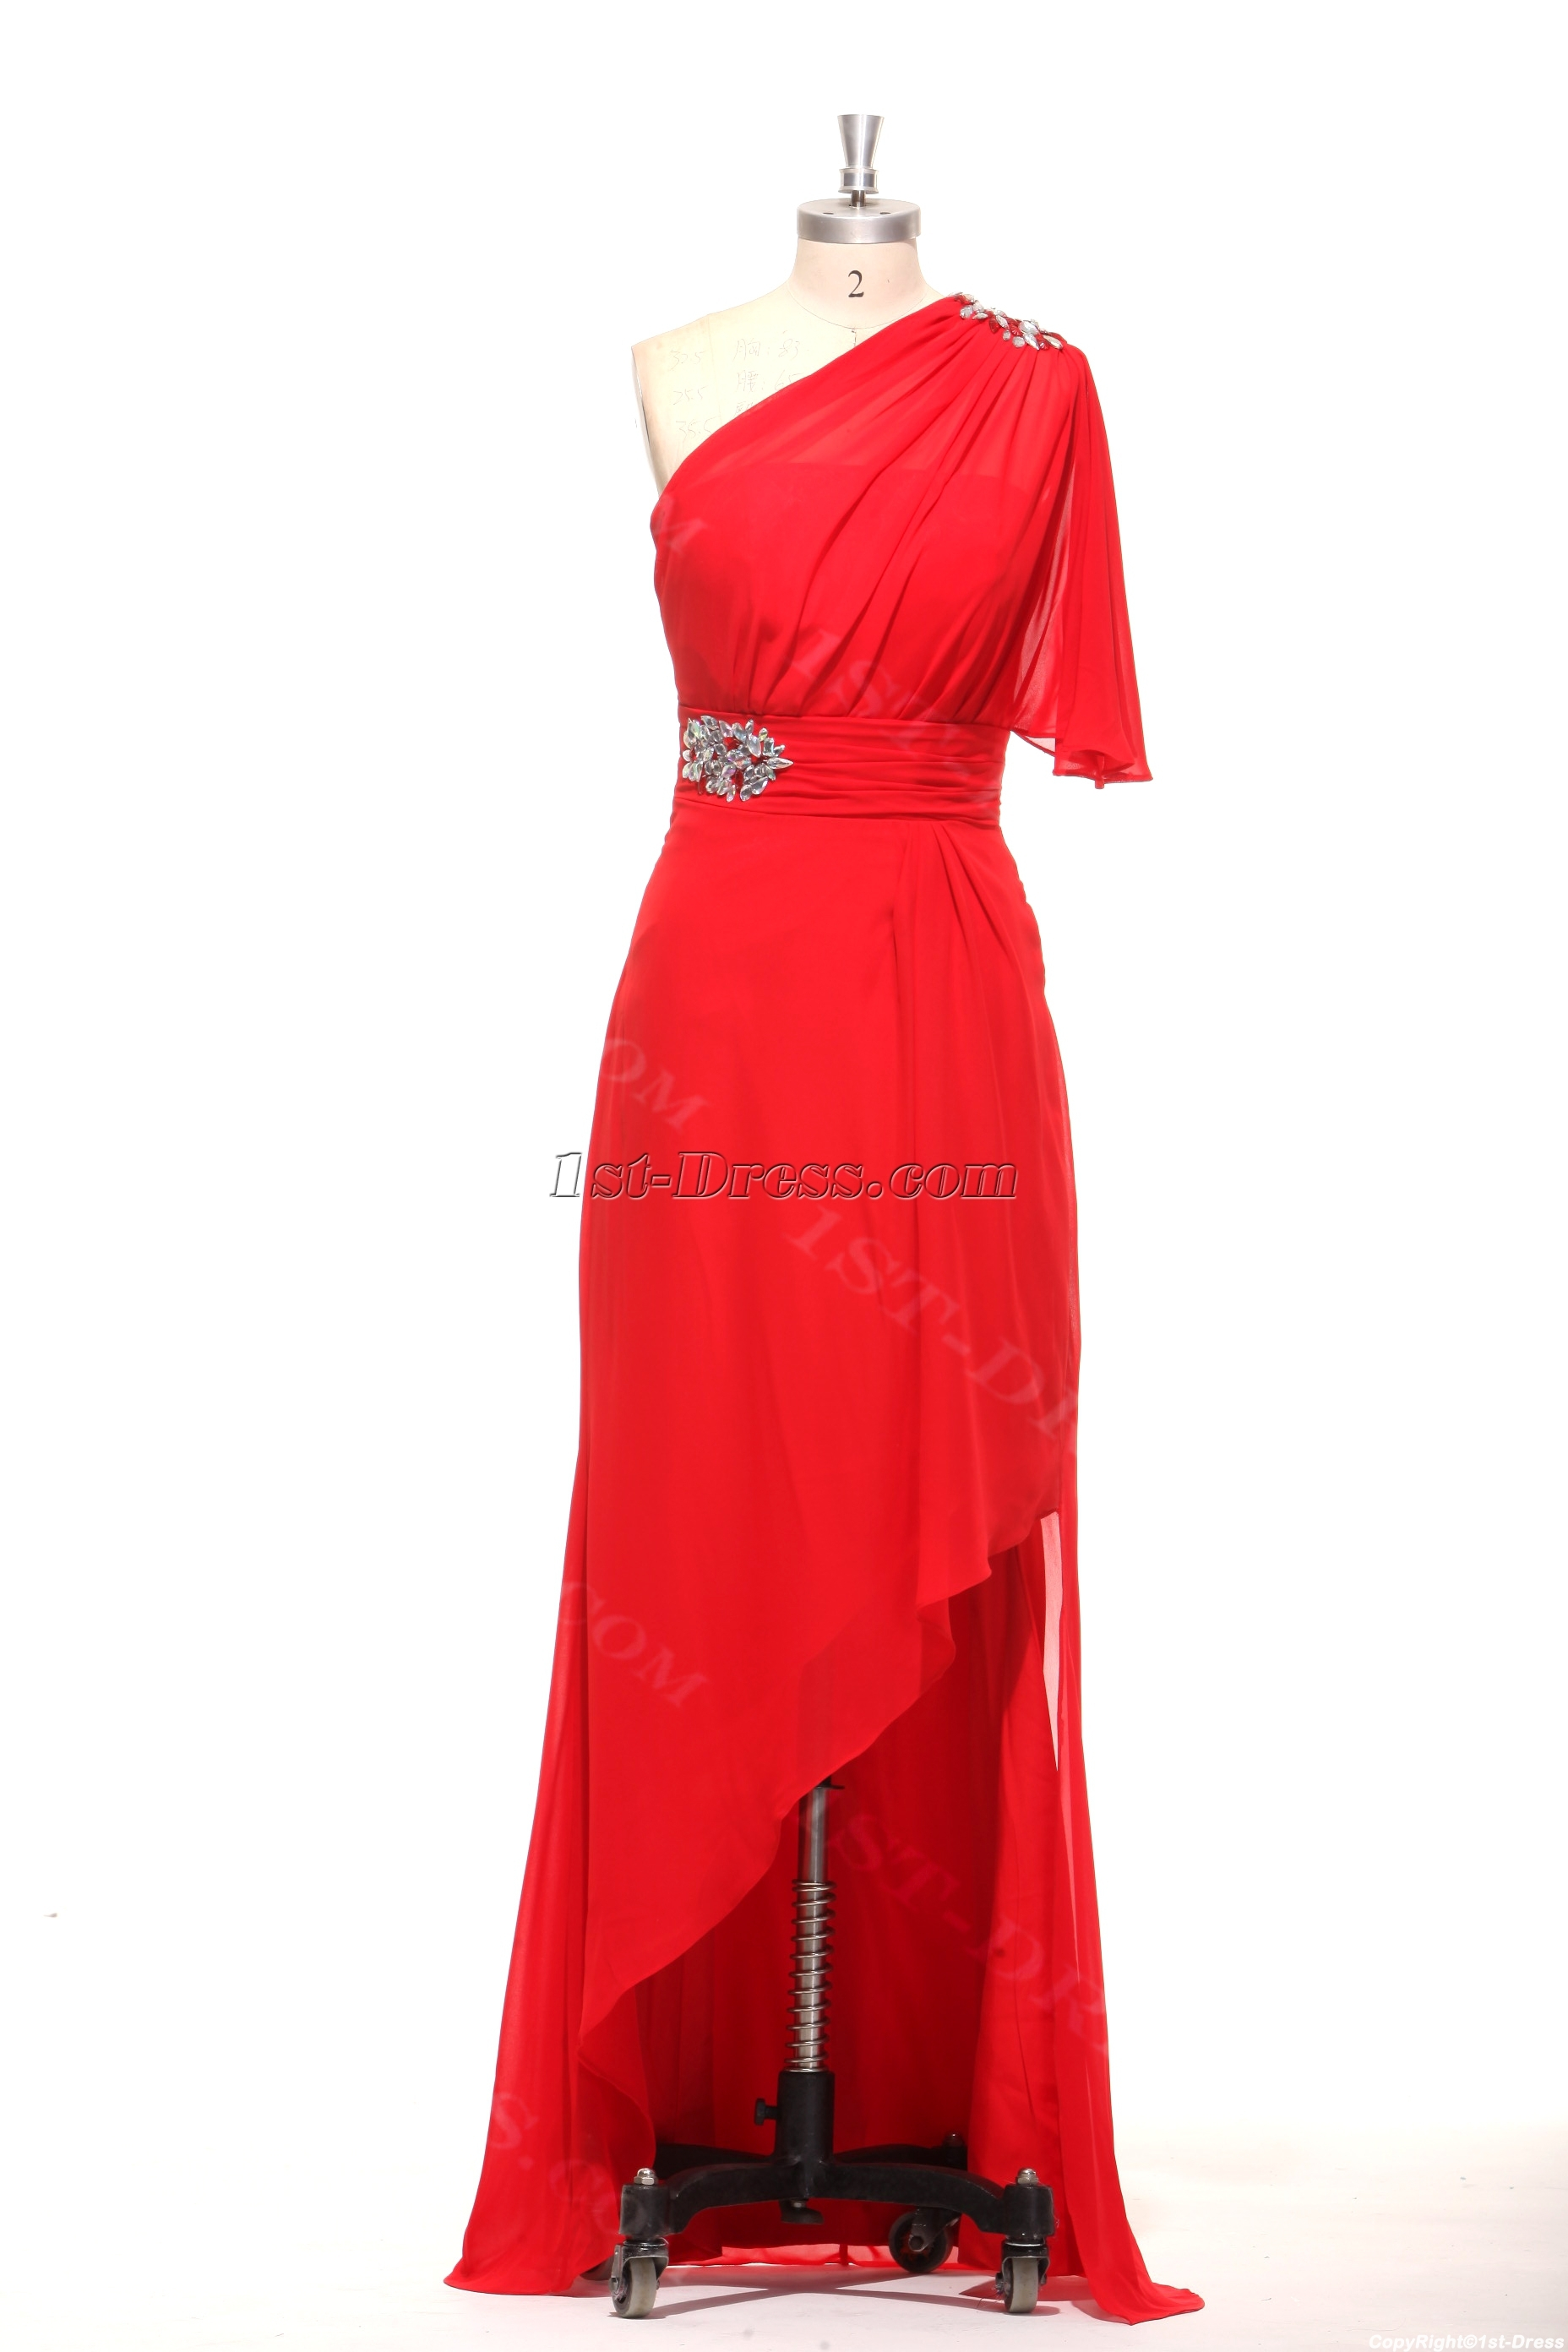 images/201309/big/Red-Strapless-Ruffled-One-Shoulder-Asymmetrical-High-Low-Dress-3037-b-1-1379847190.jpg